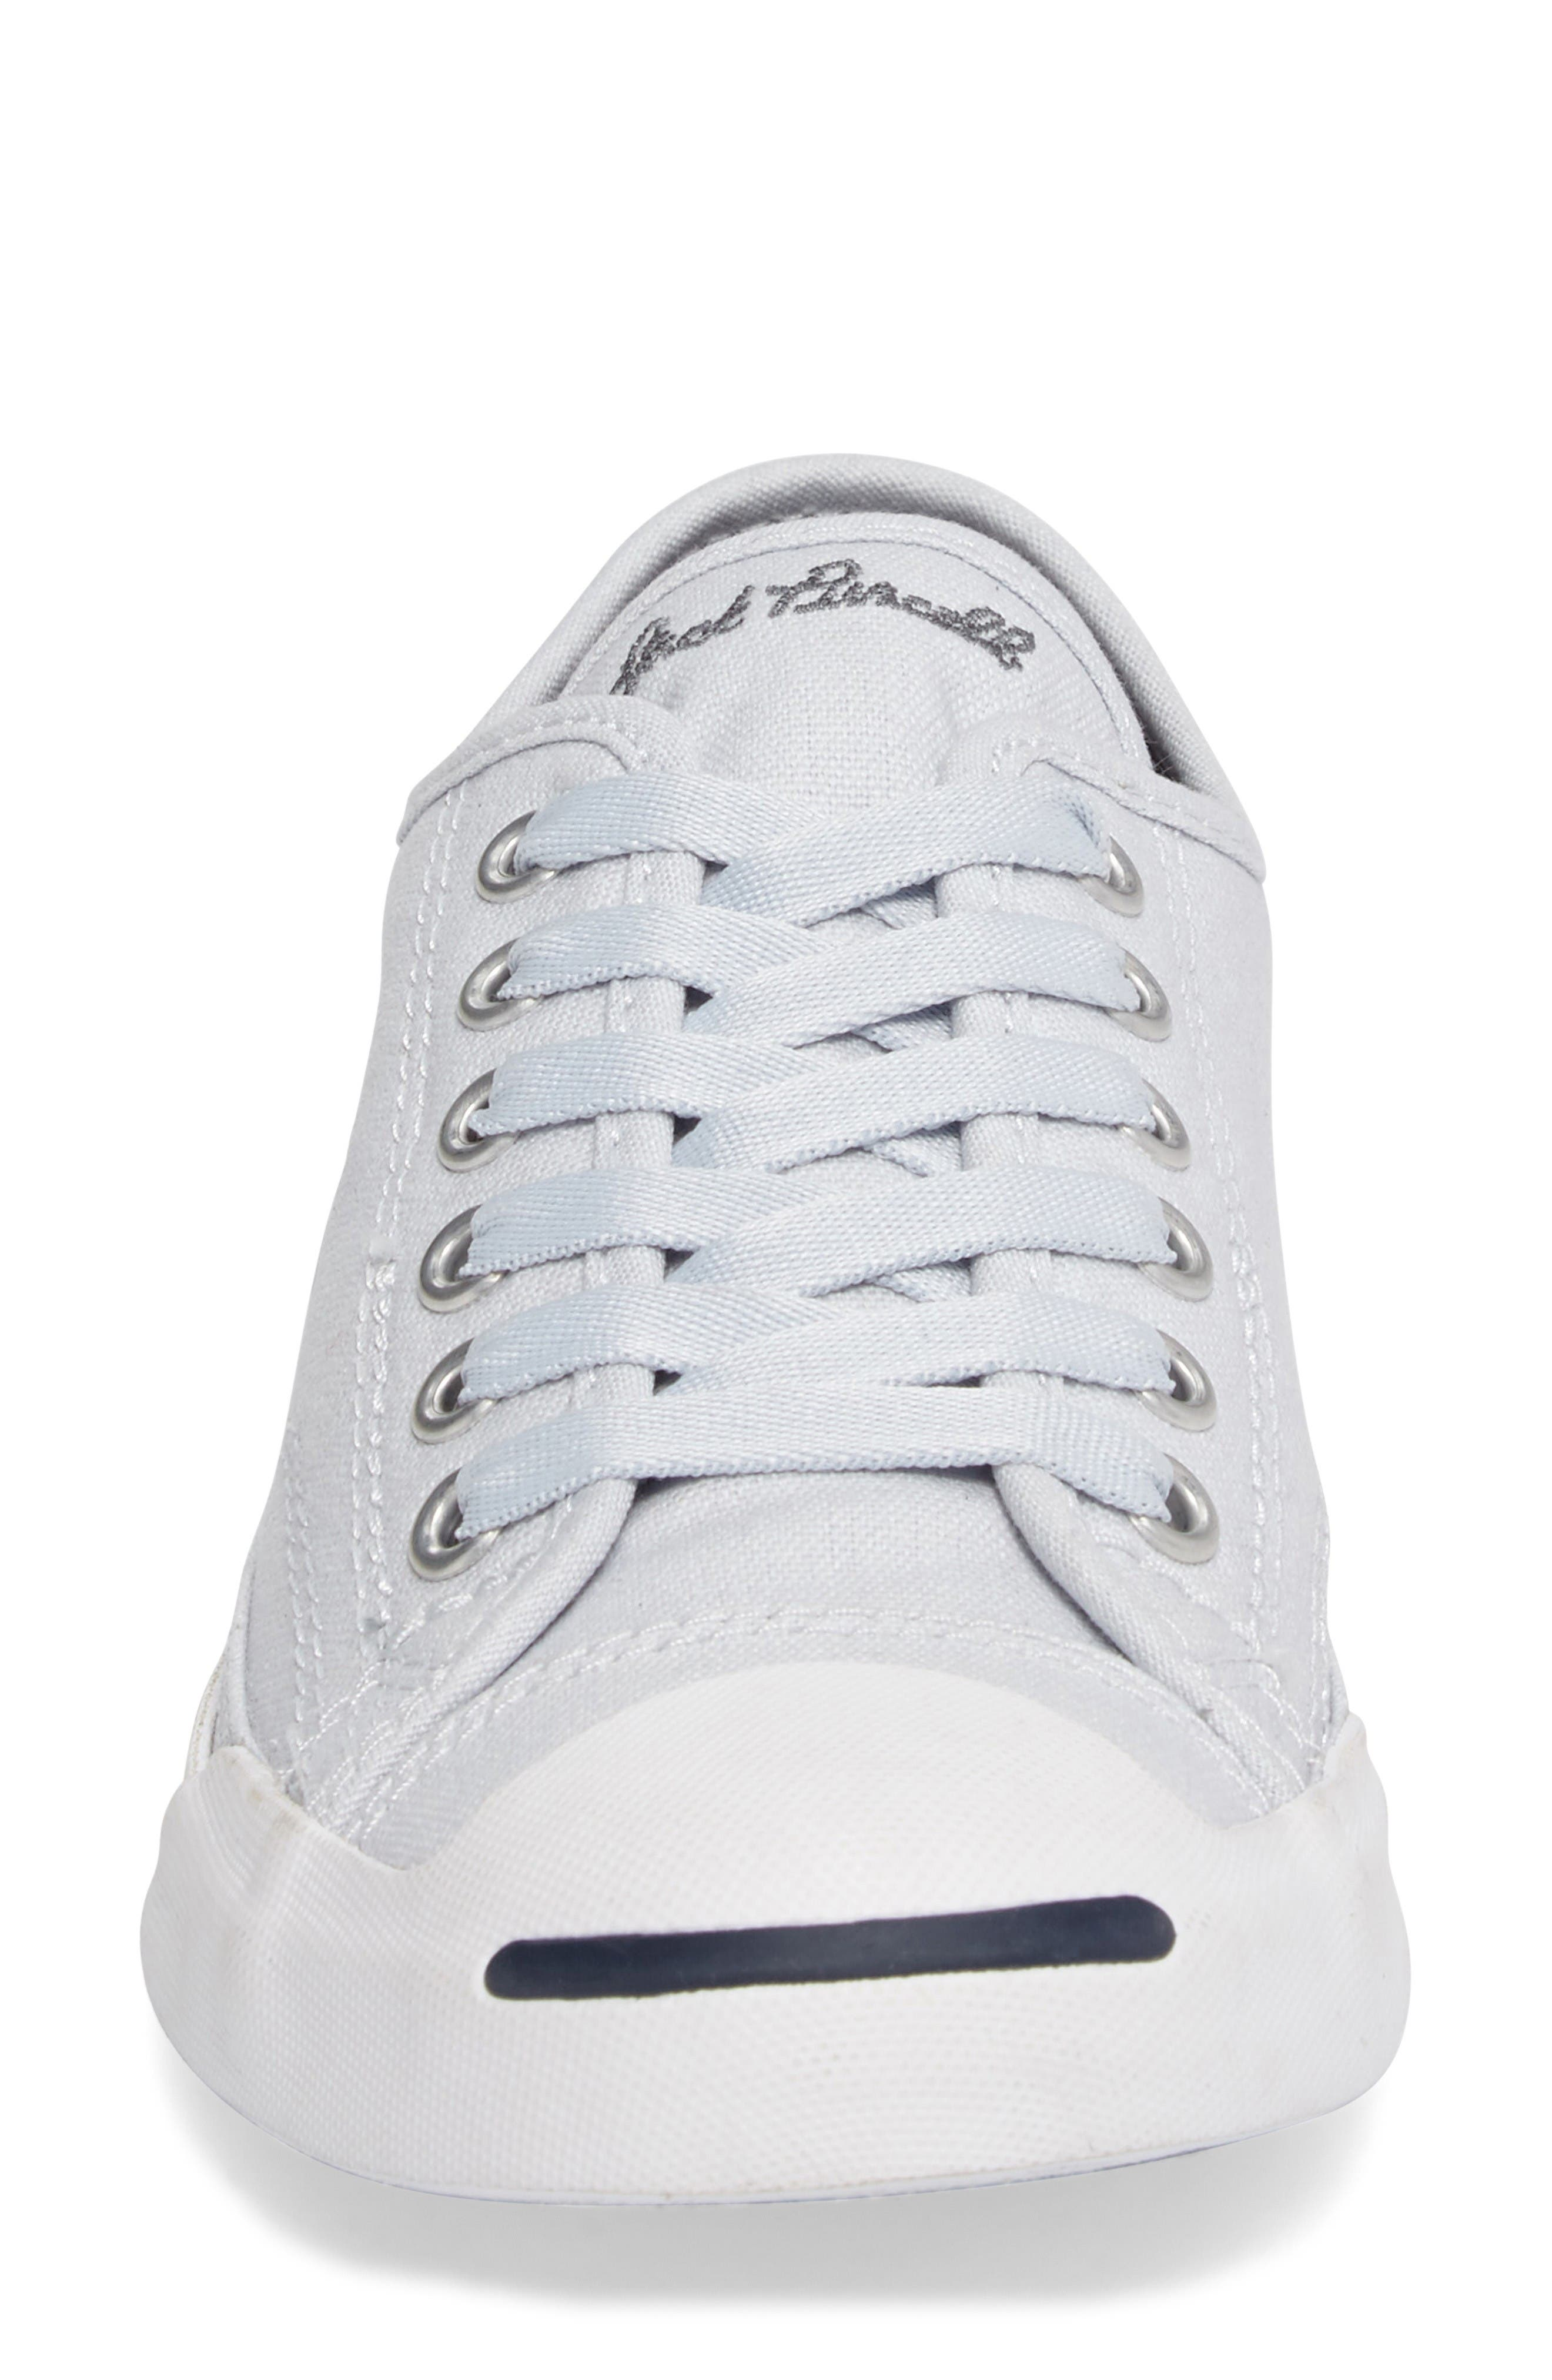 Jack Purcell Signature Ox Low Top Sneaker,                             Alternate thumbnail 5, color,                             Platinum